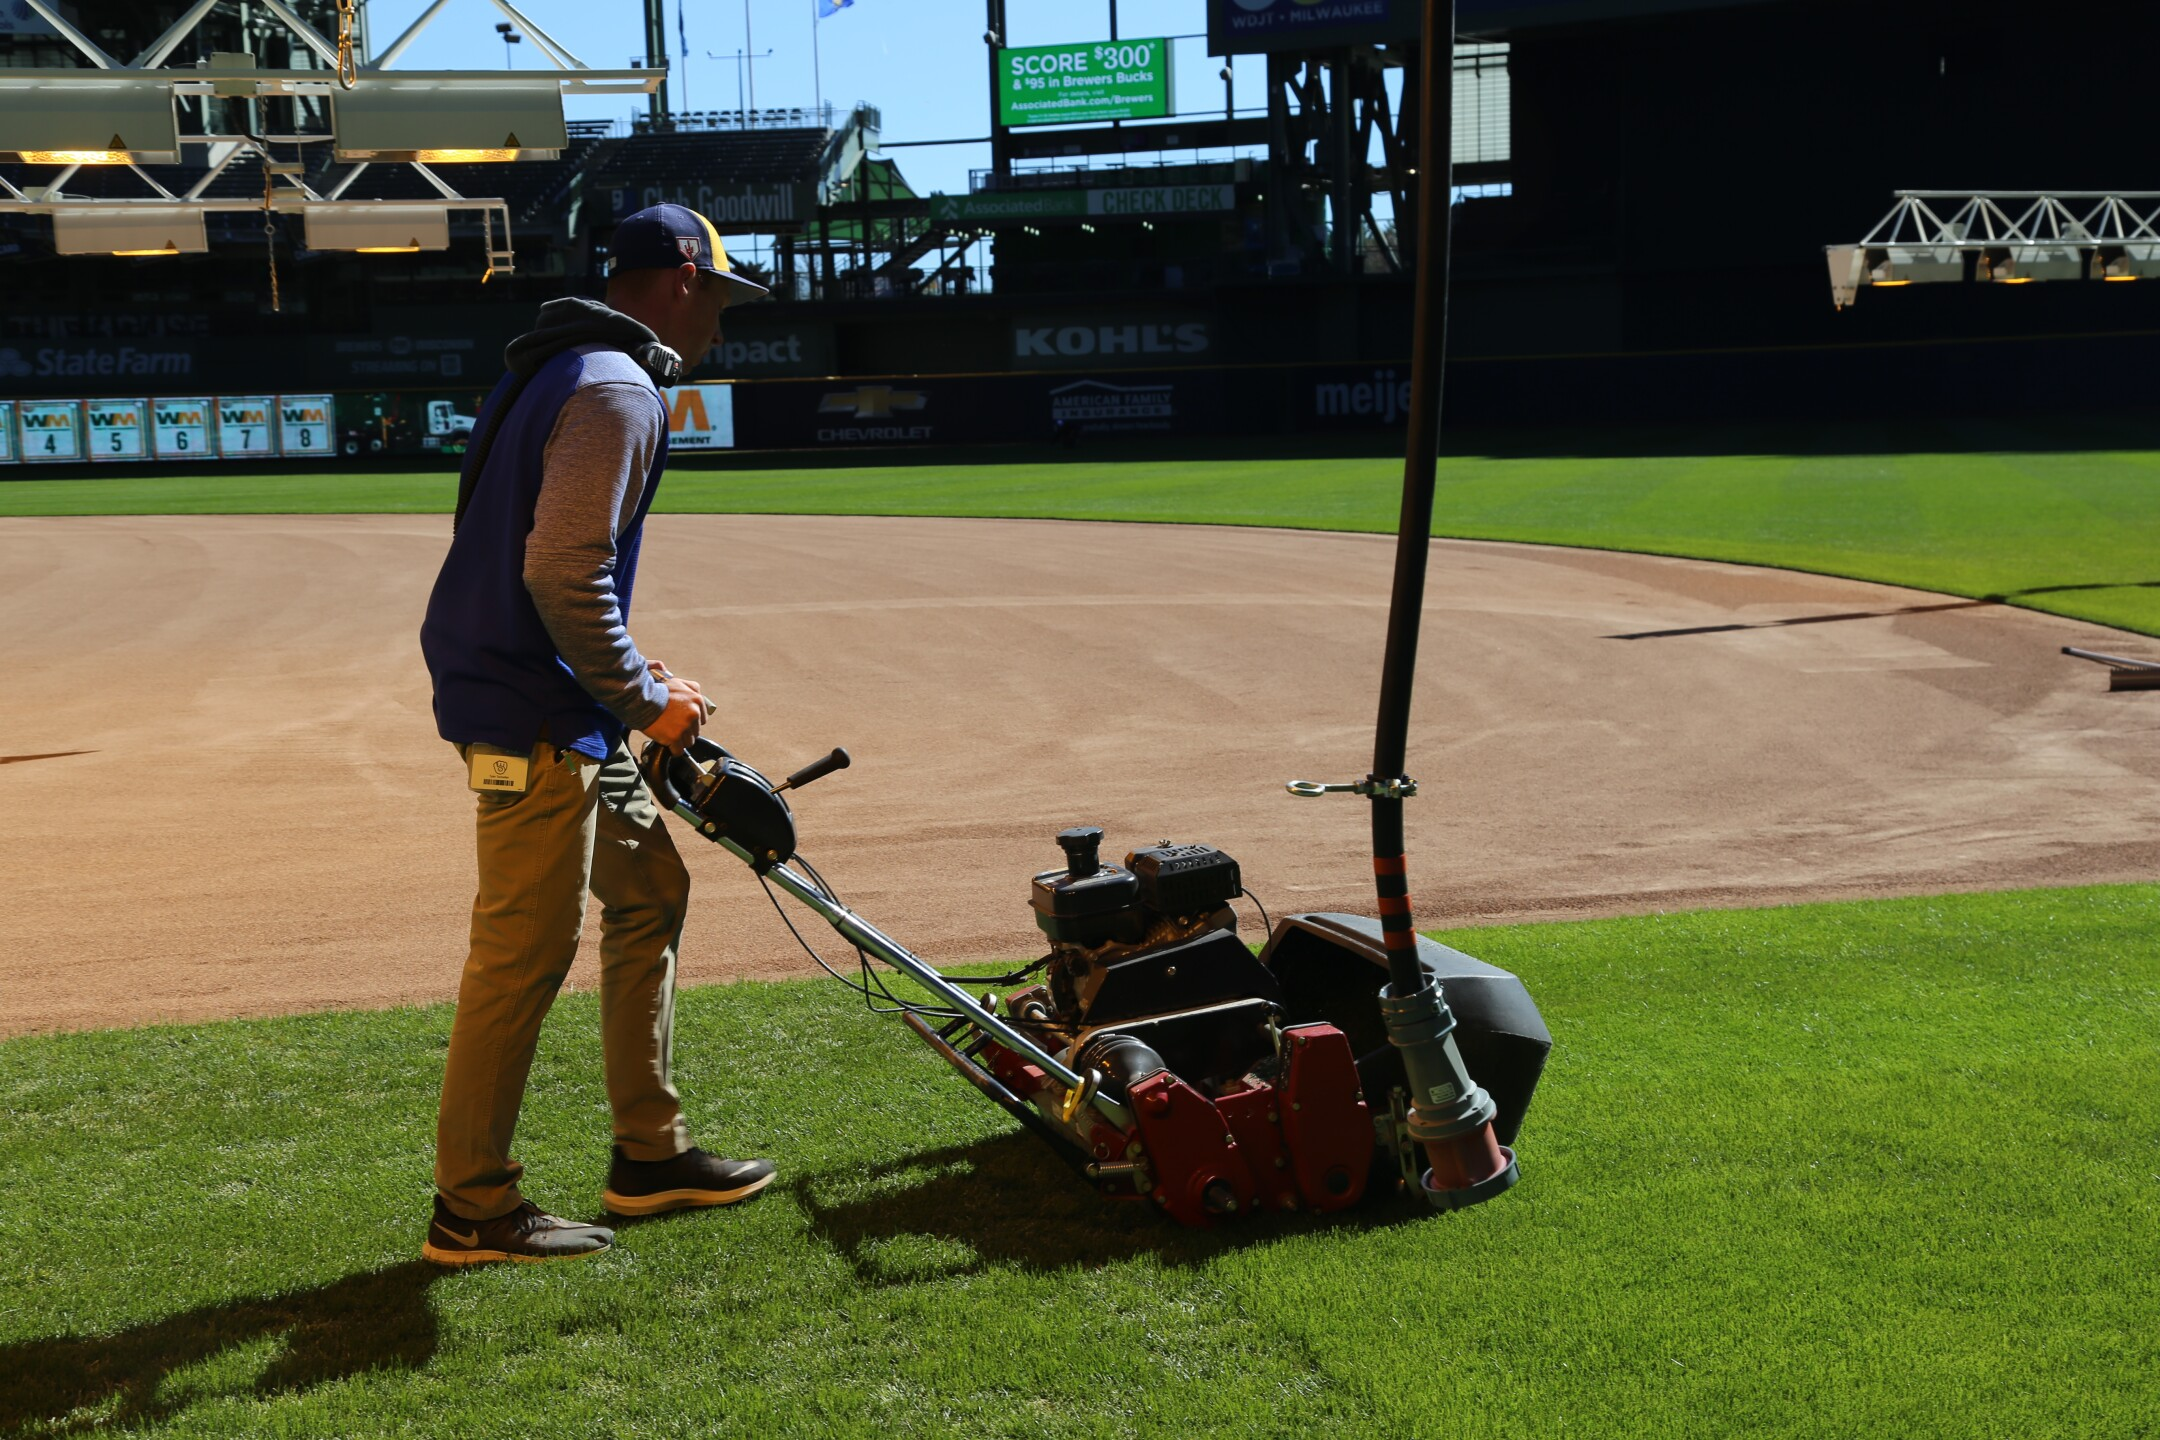 Opening Day for the Milwaukee Brewers is days away. The field preparation is underway.